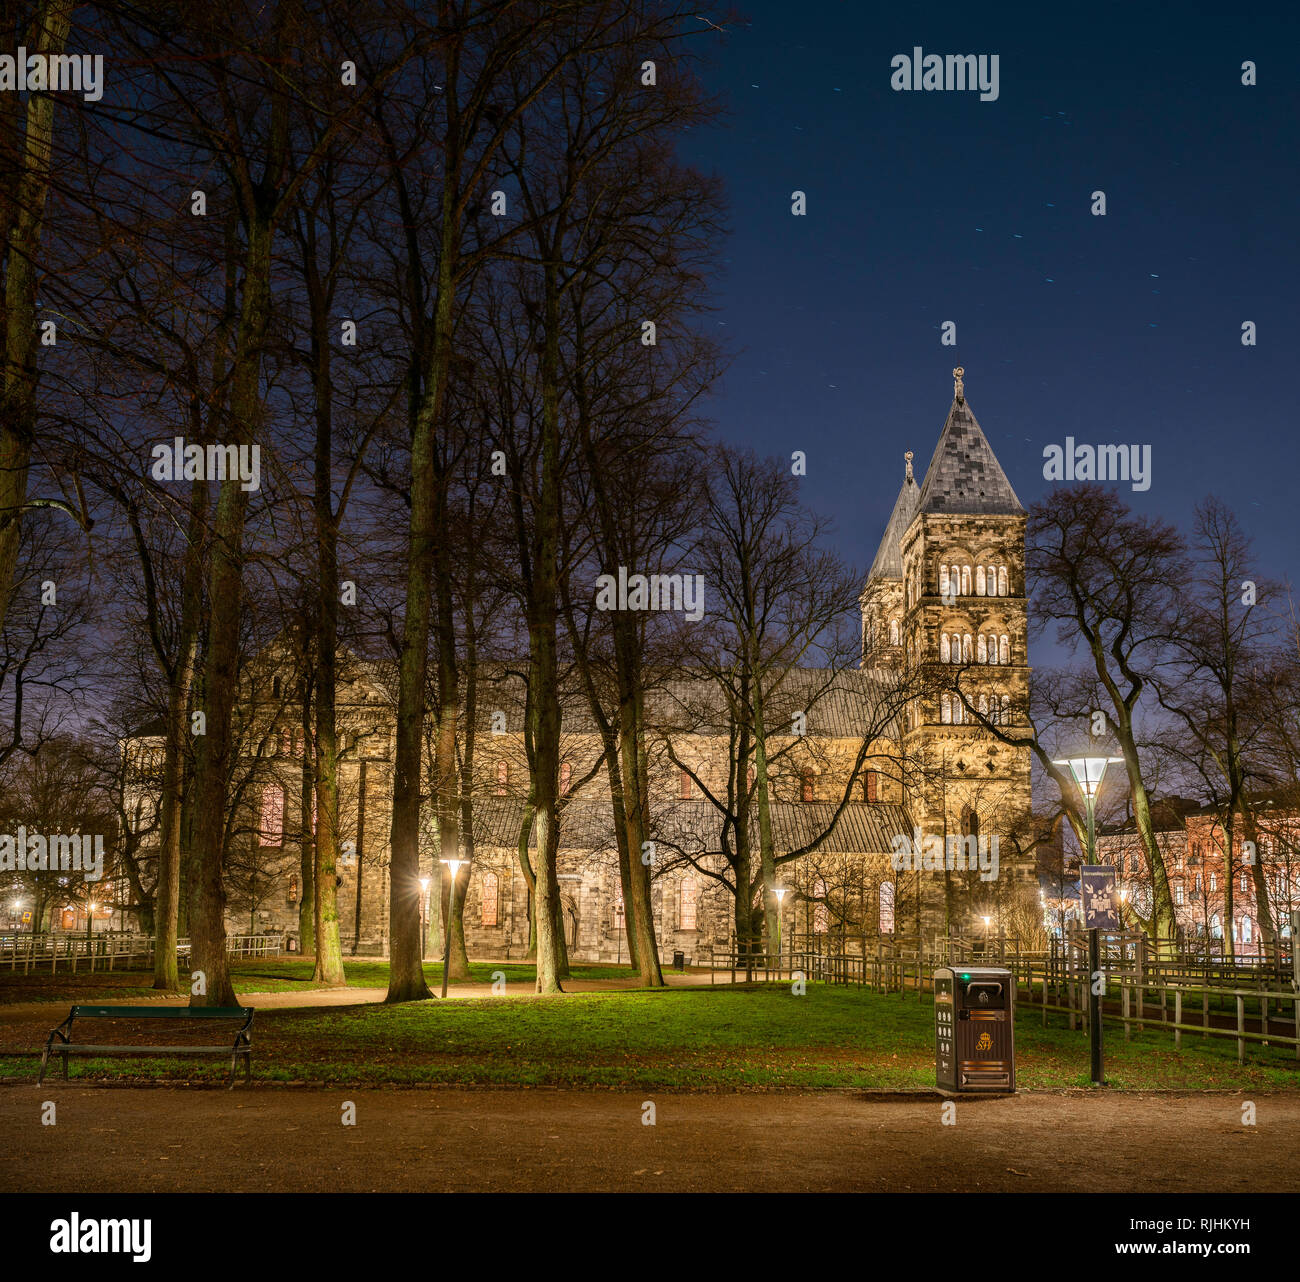 The Cathedral (Domkyrkan) at night, Lund, Skane, Sweden, Scandinavia - Stock Image